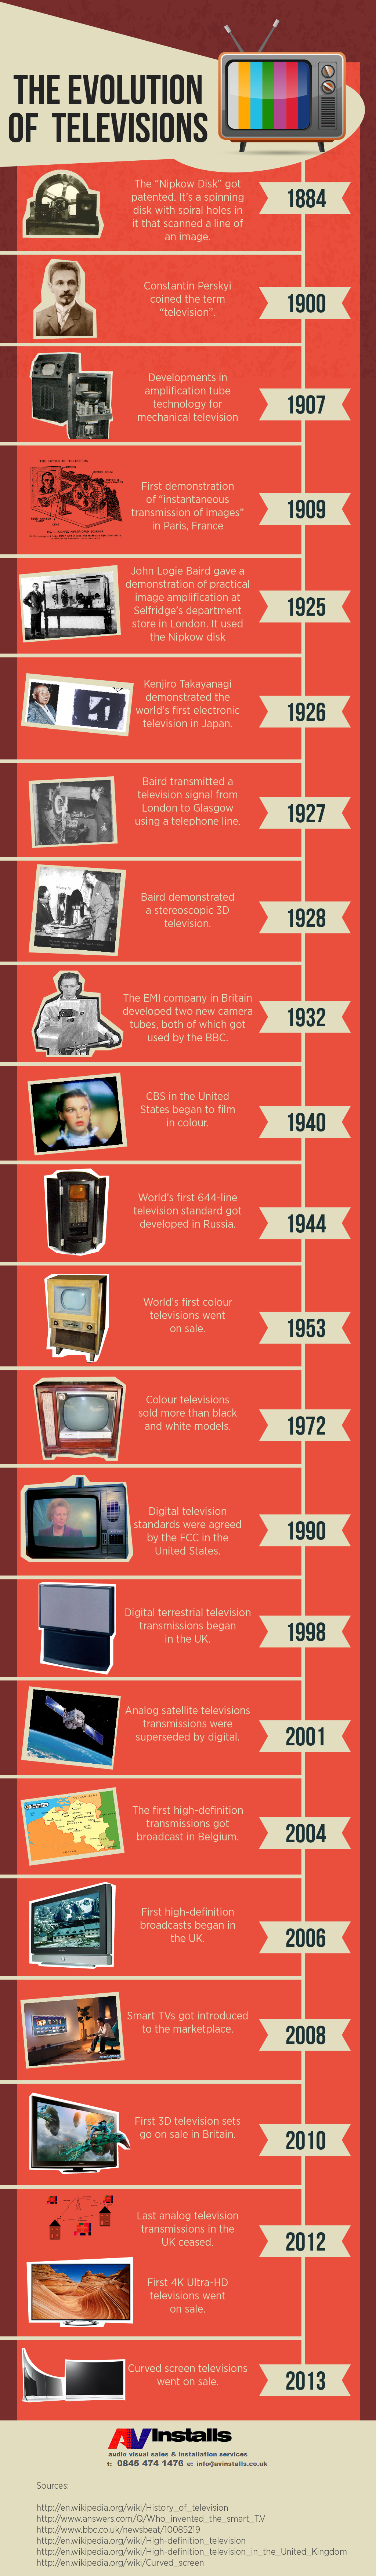 history-of-TV-evoluion